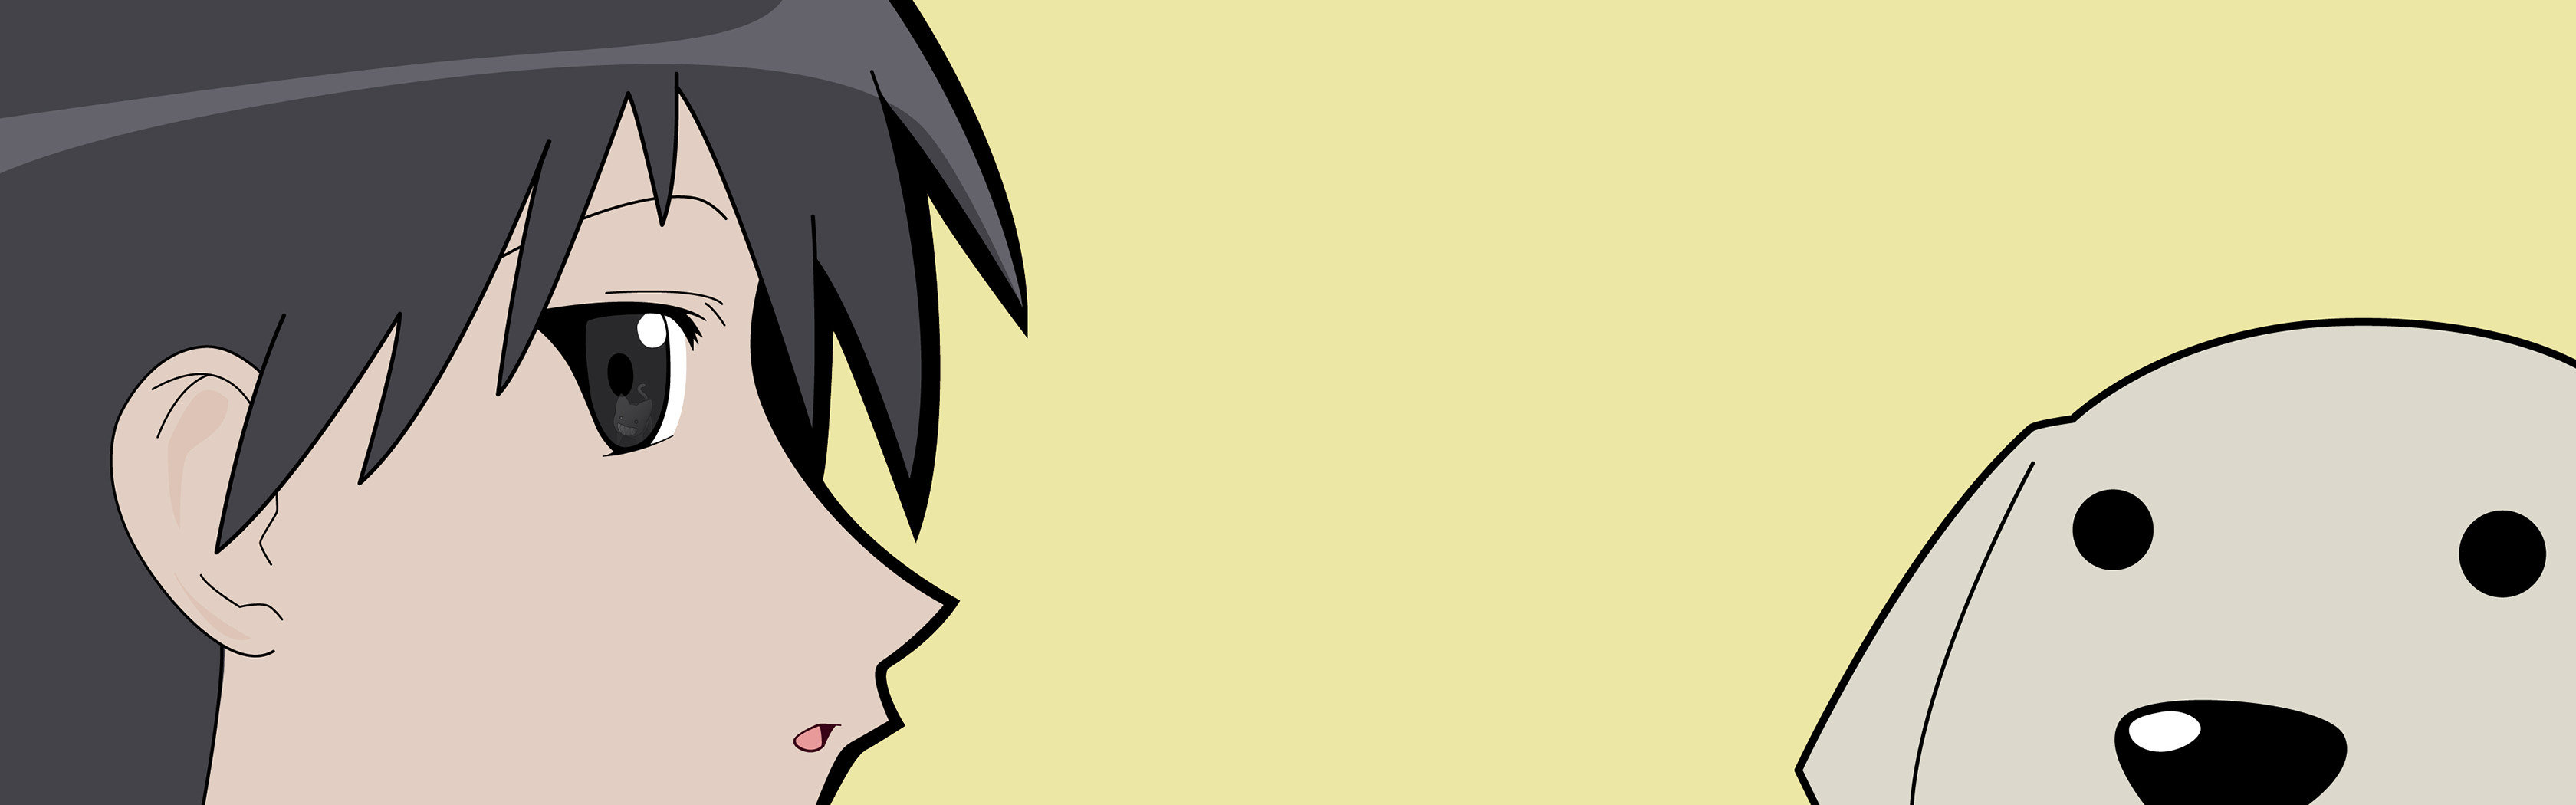 High resolution Azumanga Daioh dual screen 3360x1050 wallpaper ID:374068 for computer